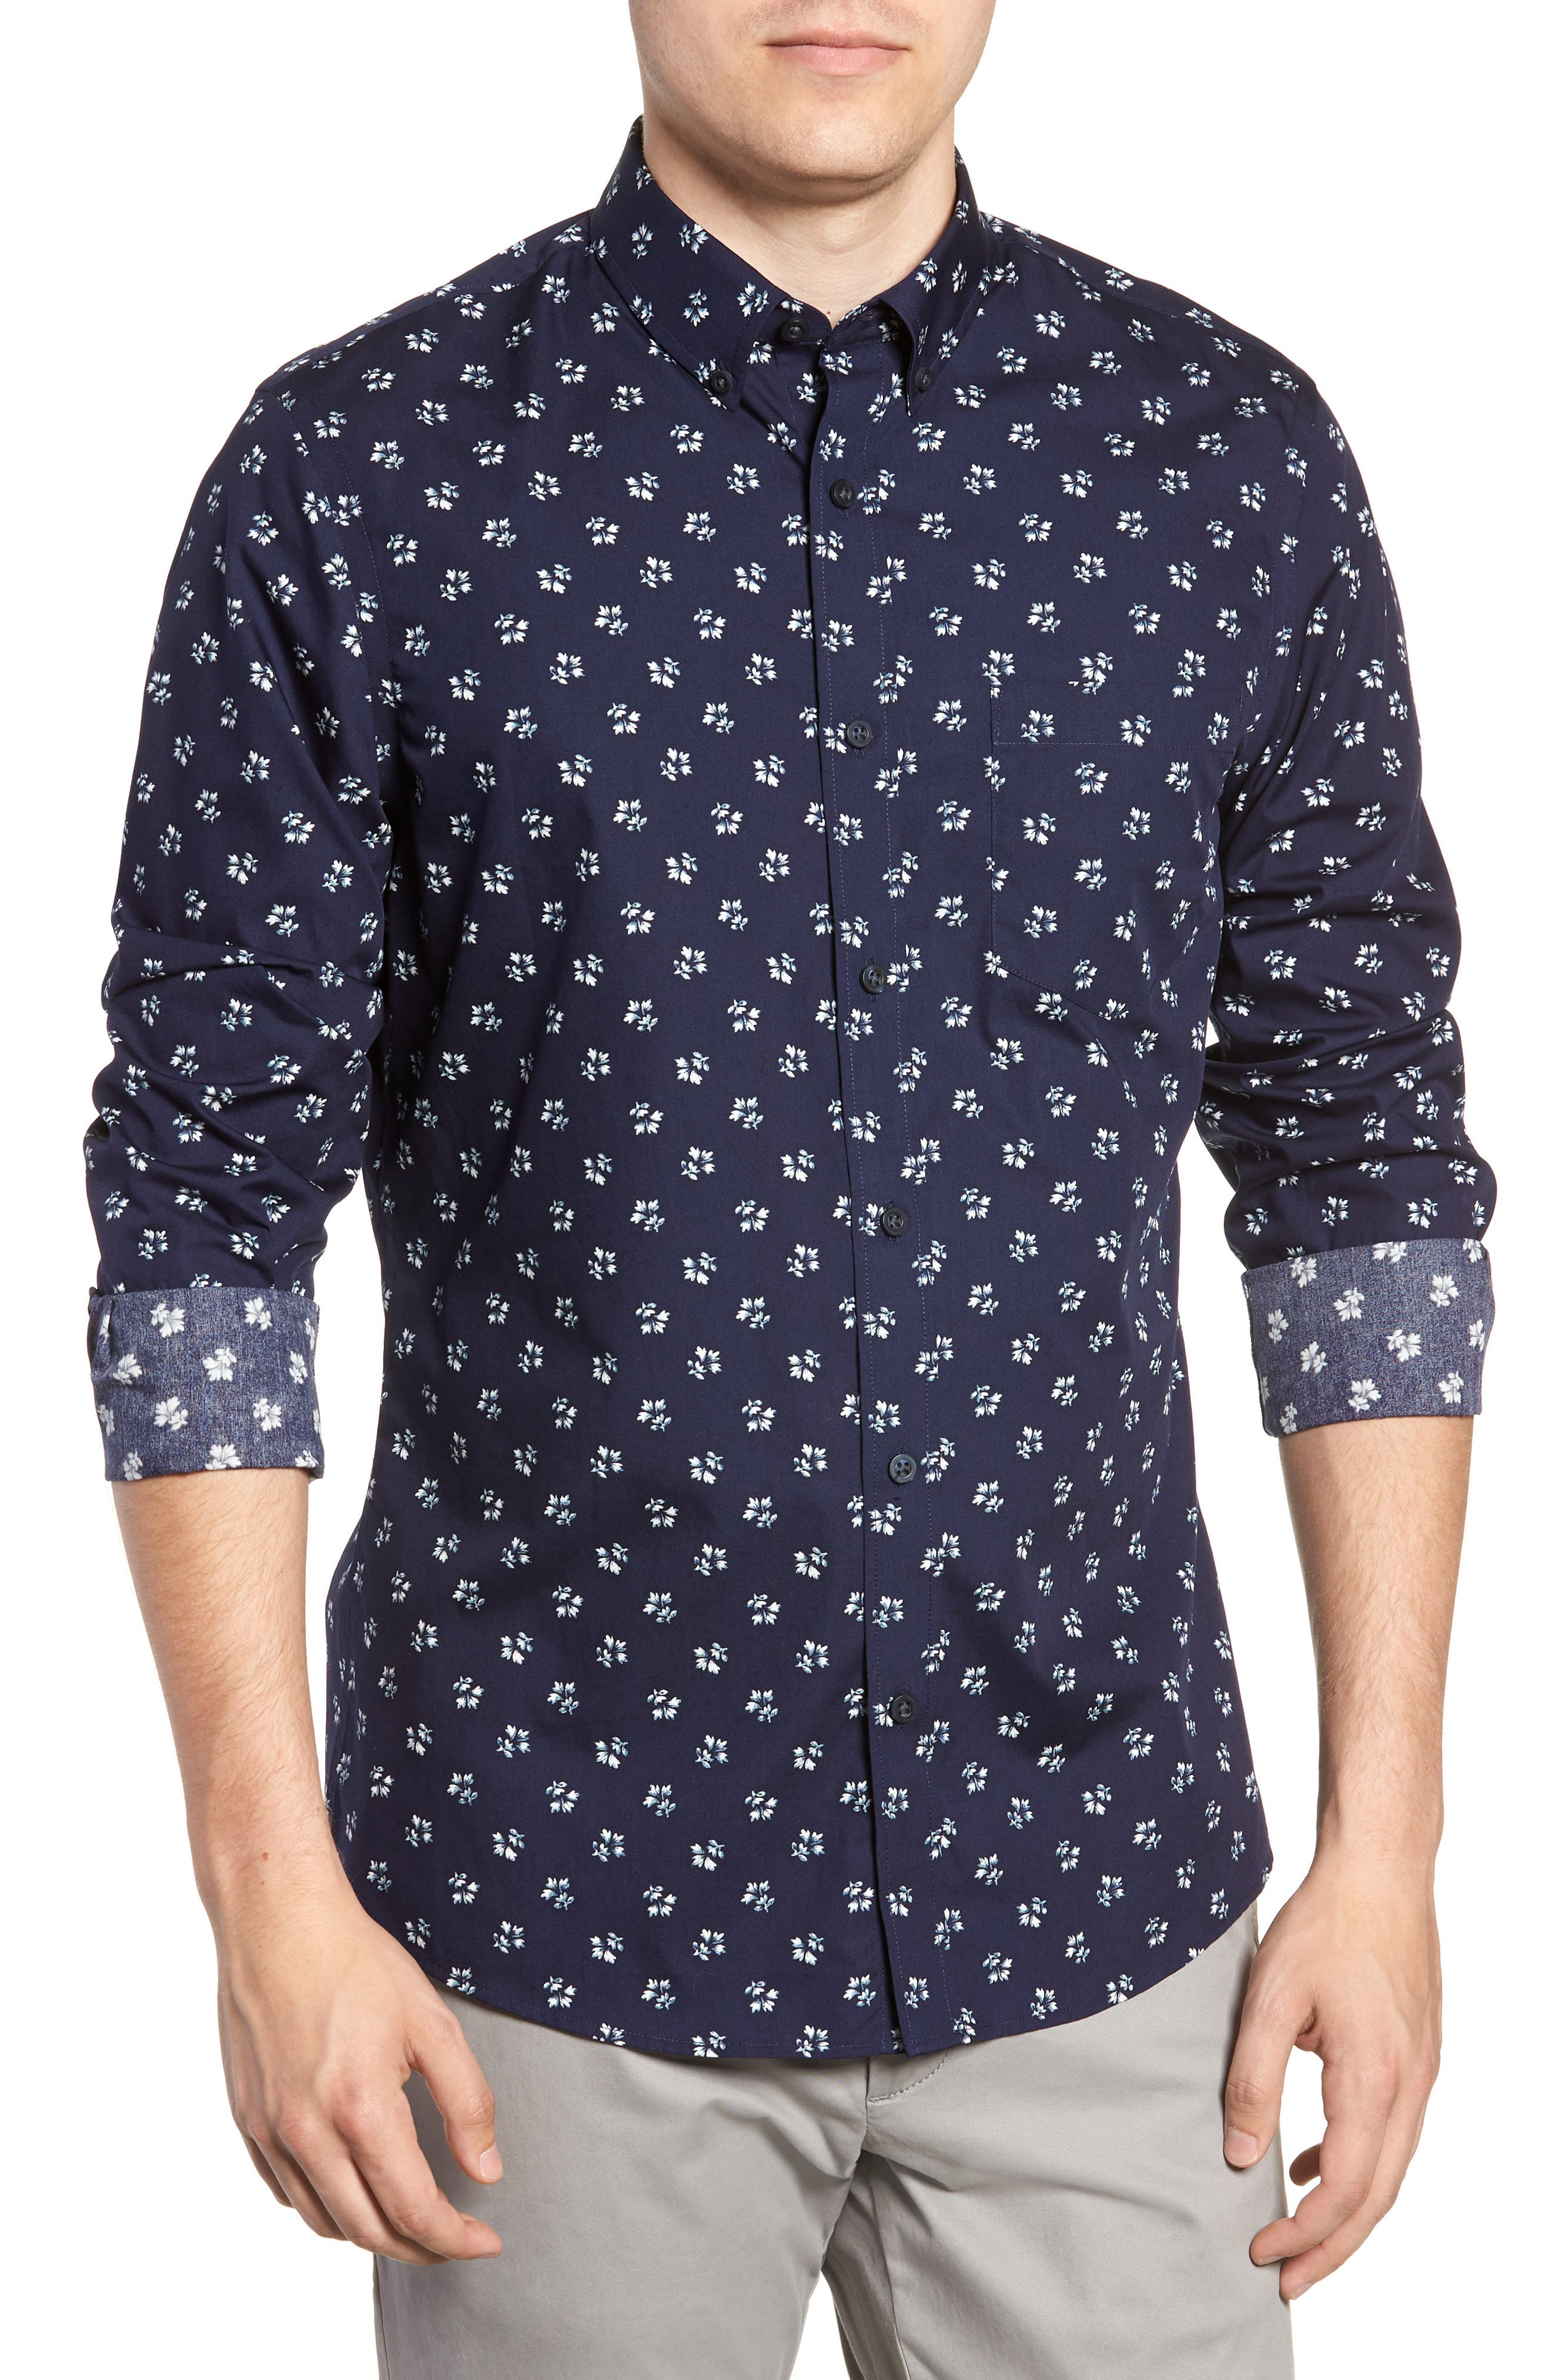 Trim Fit Non-Iron Print Sport Shirt,                         Main,                         color, NAVY NIGHT FLORAL PRINT